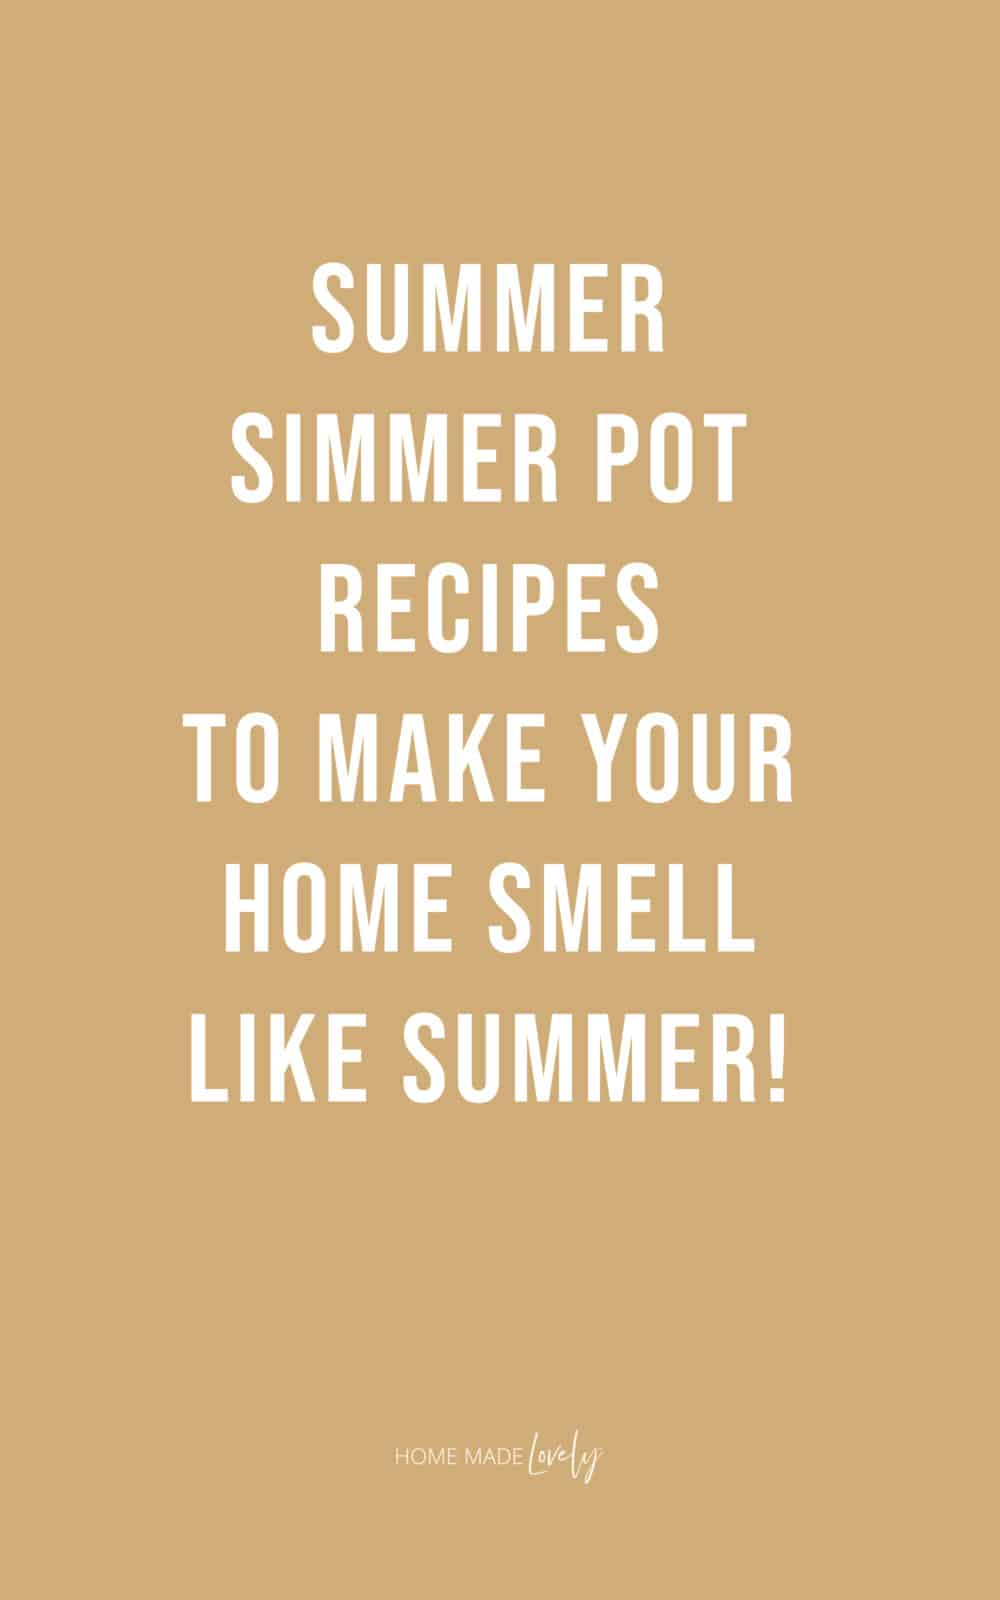 Summer Simmer Pot Recipes text over yellow background